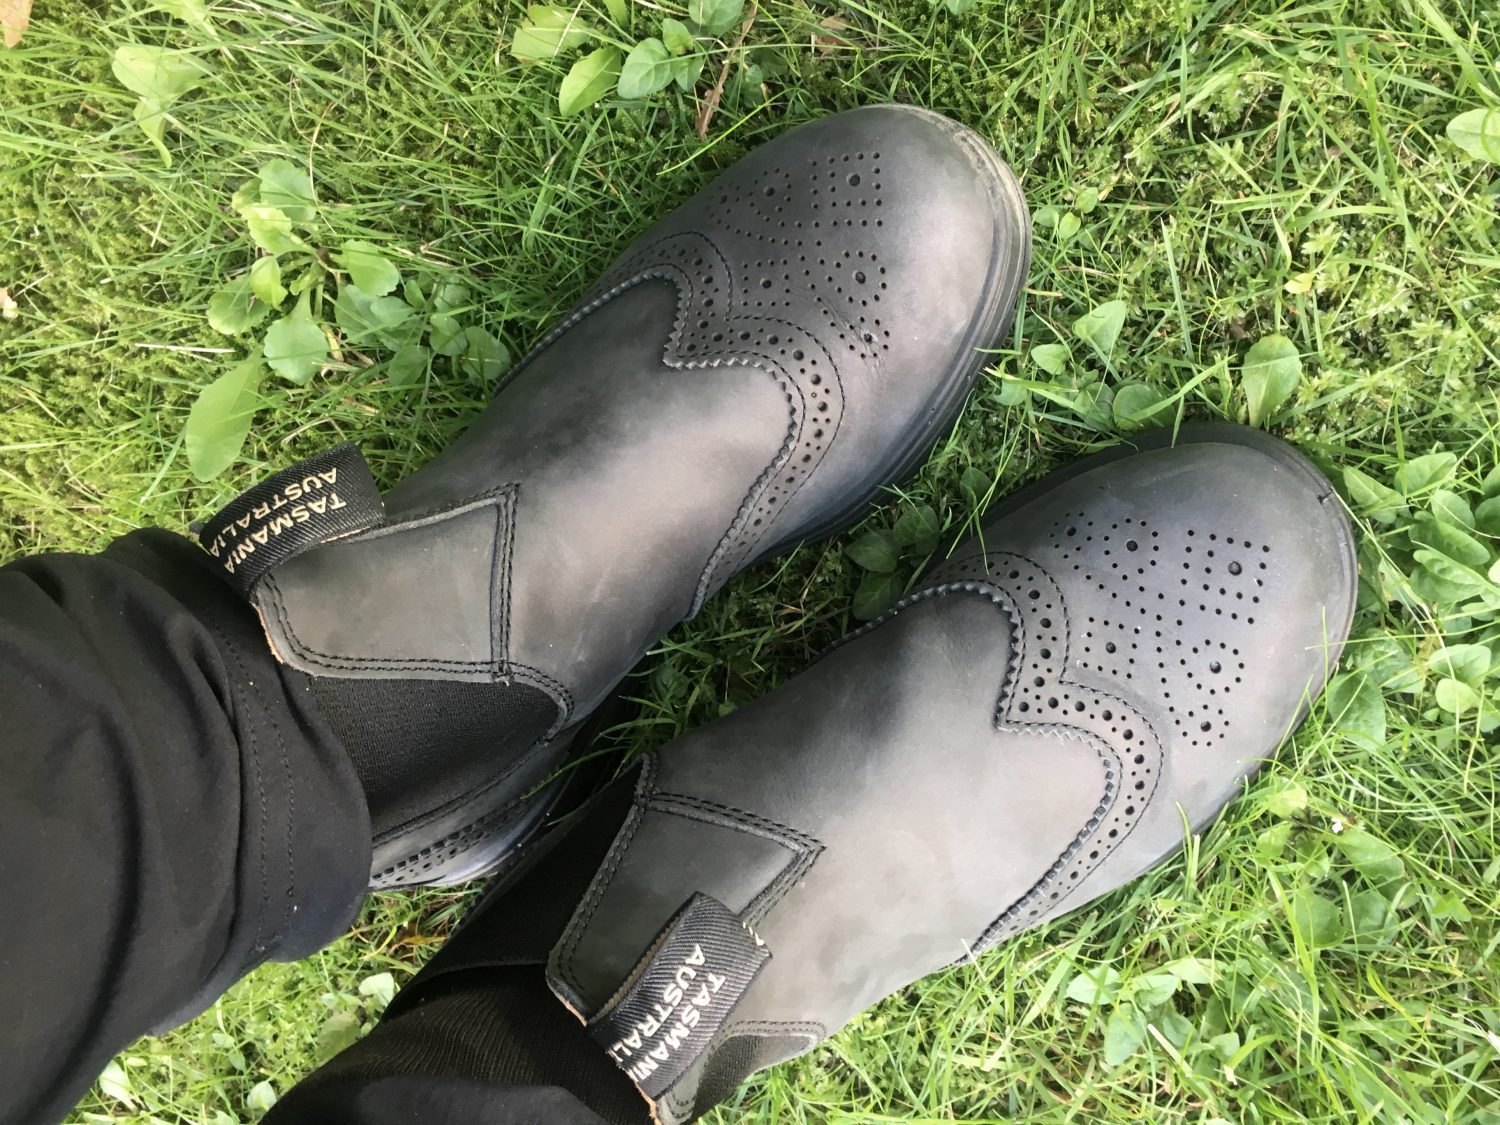 Blundstones Chelsea boots as trekking boots for the camino